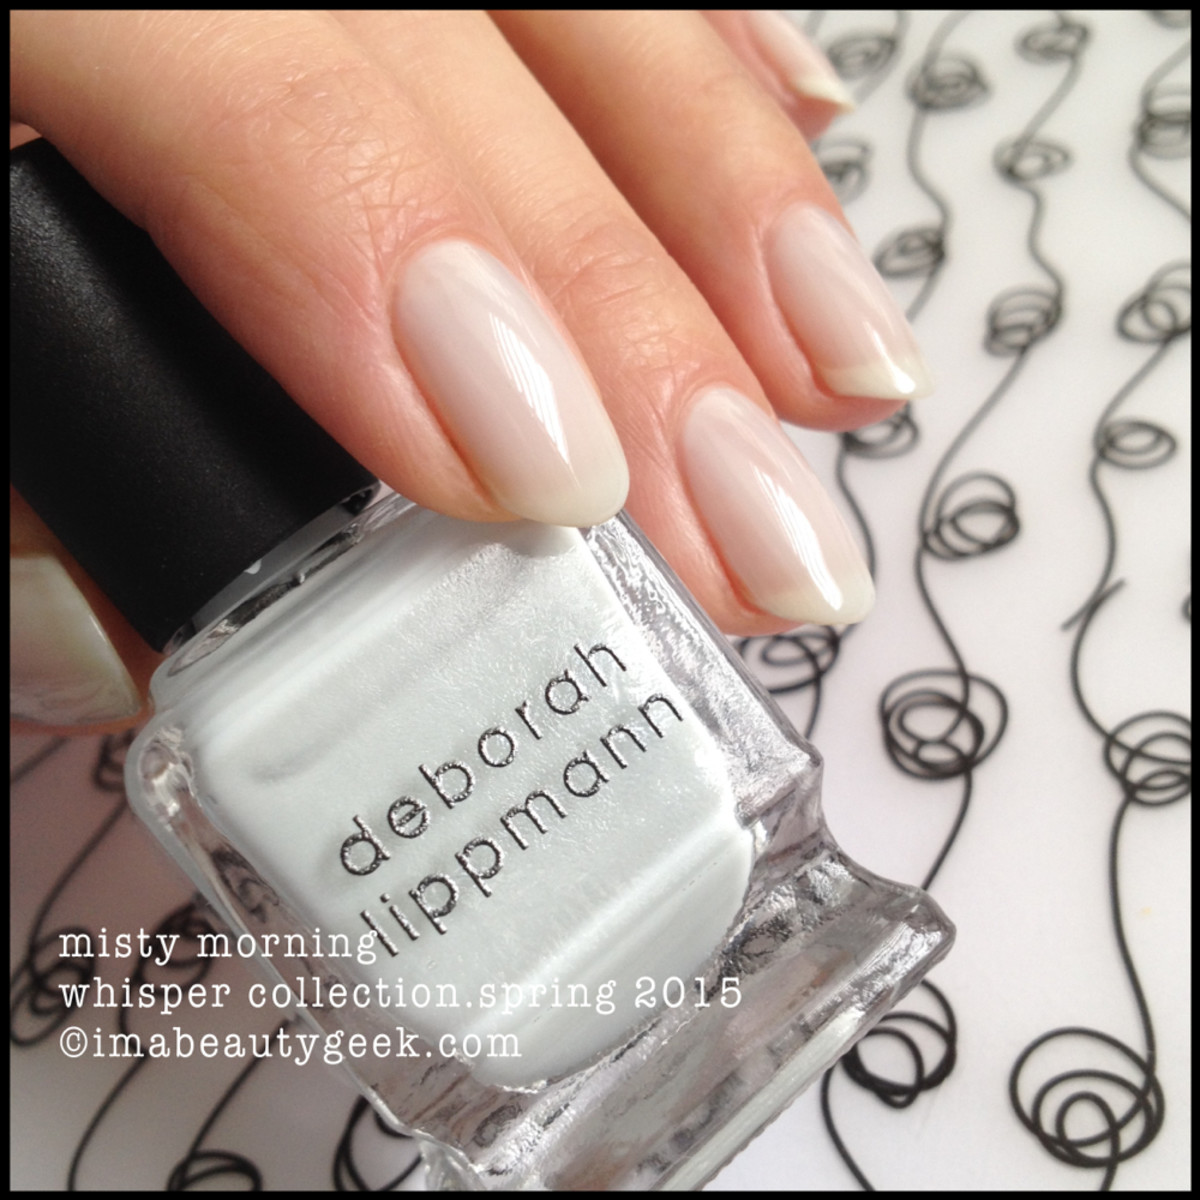 Deborah Lippmann Misty Morning Whisper Collection Spring 2015